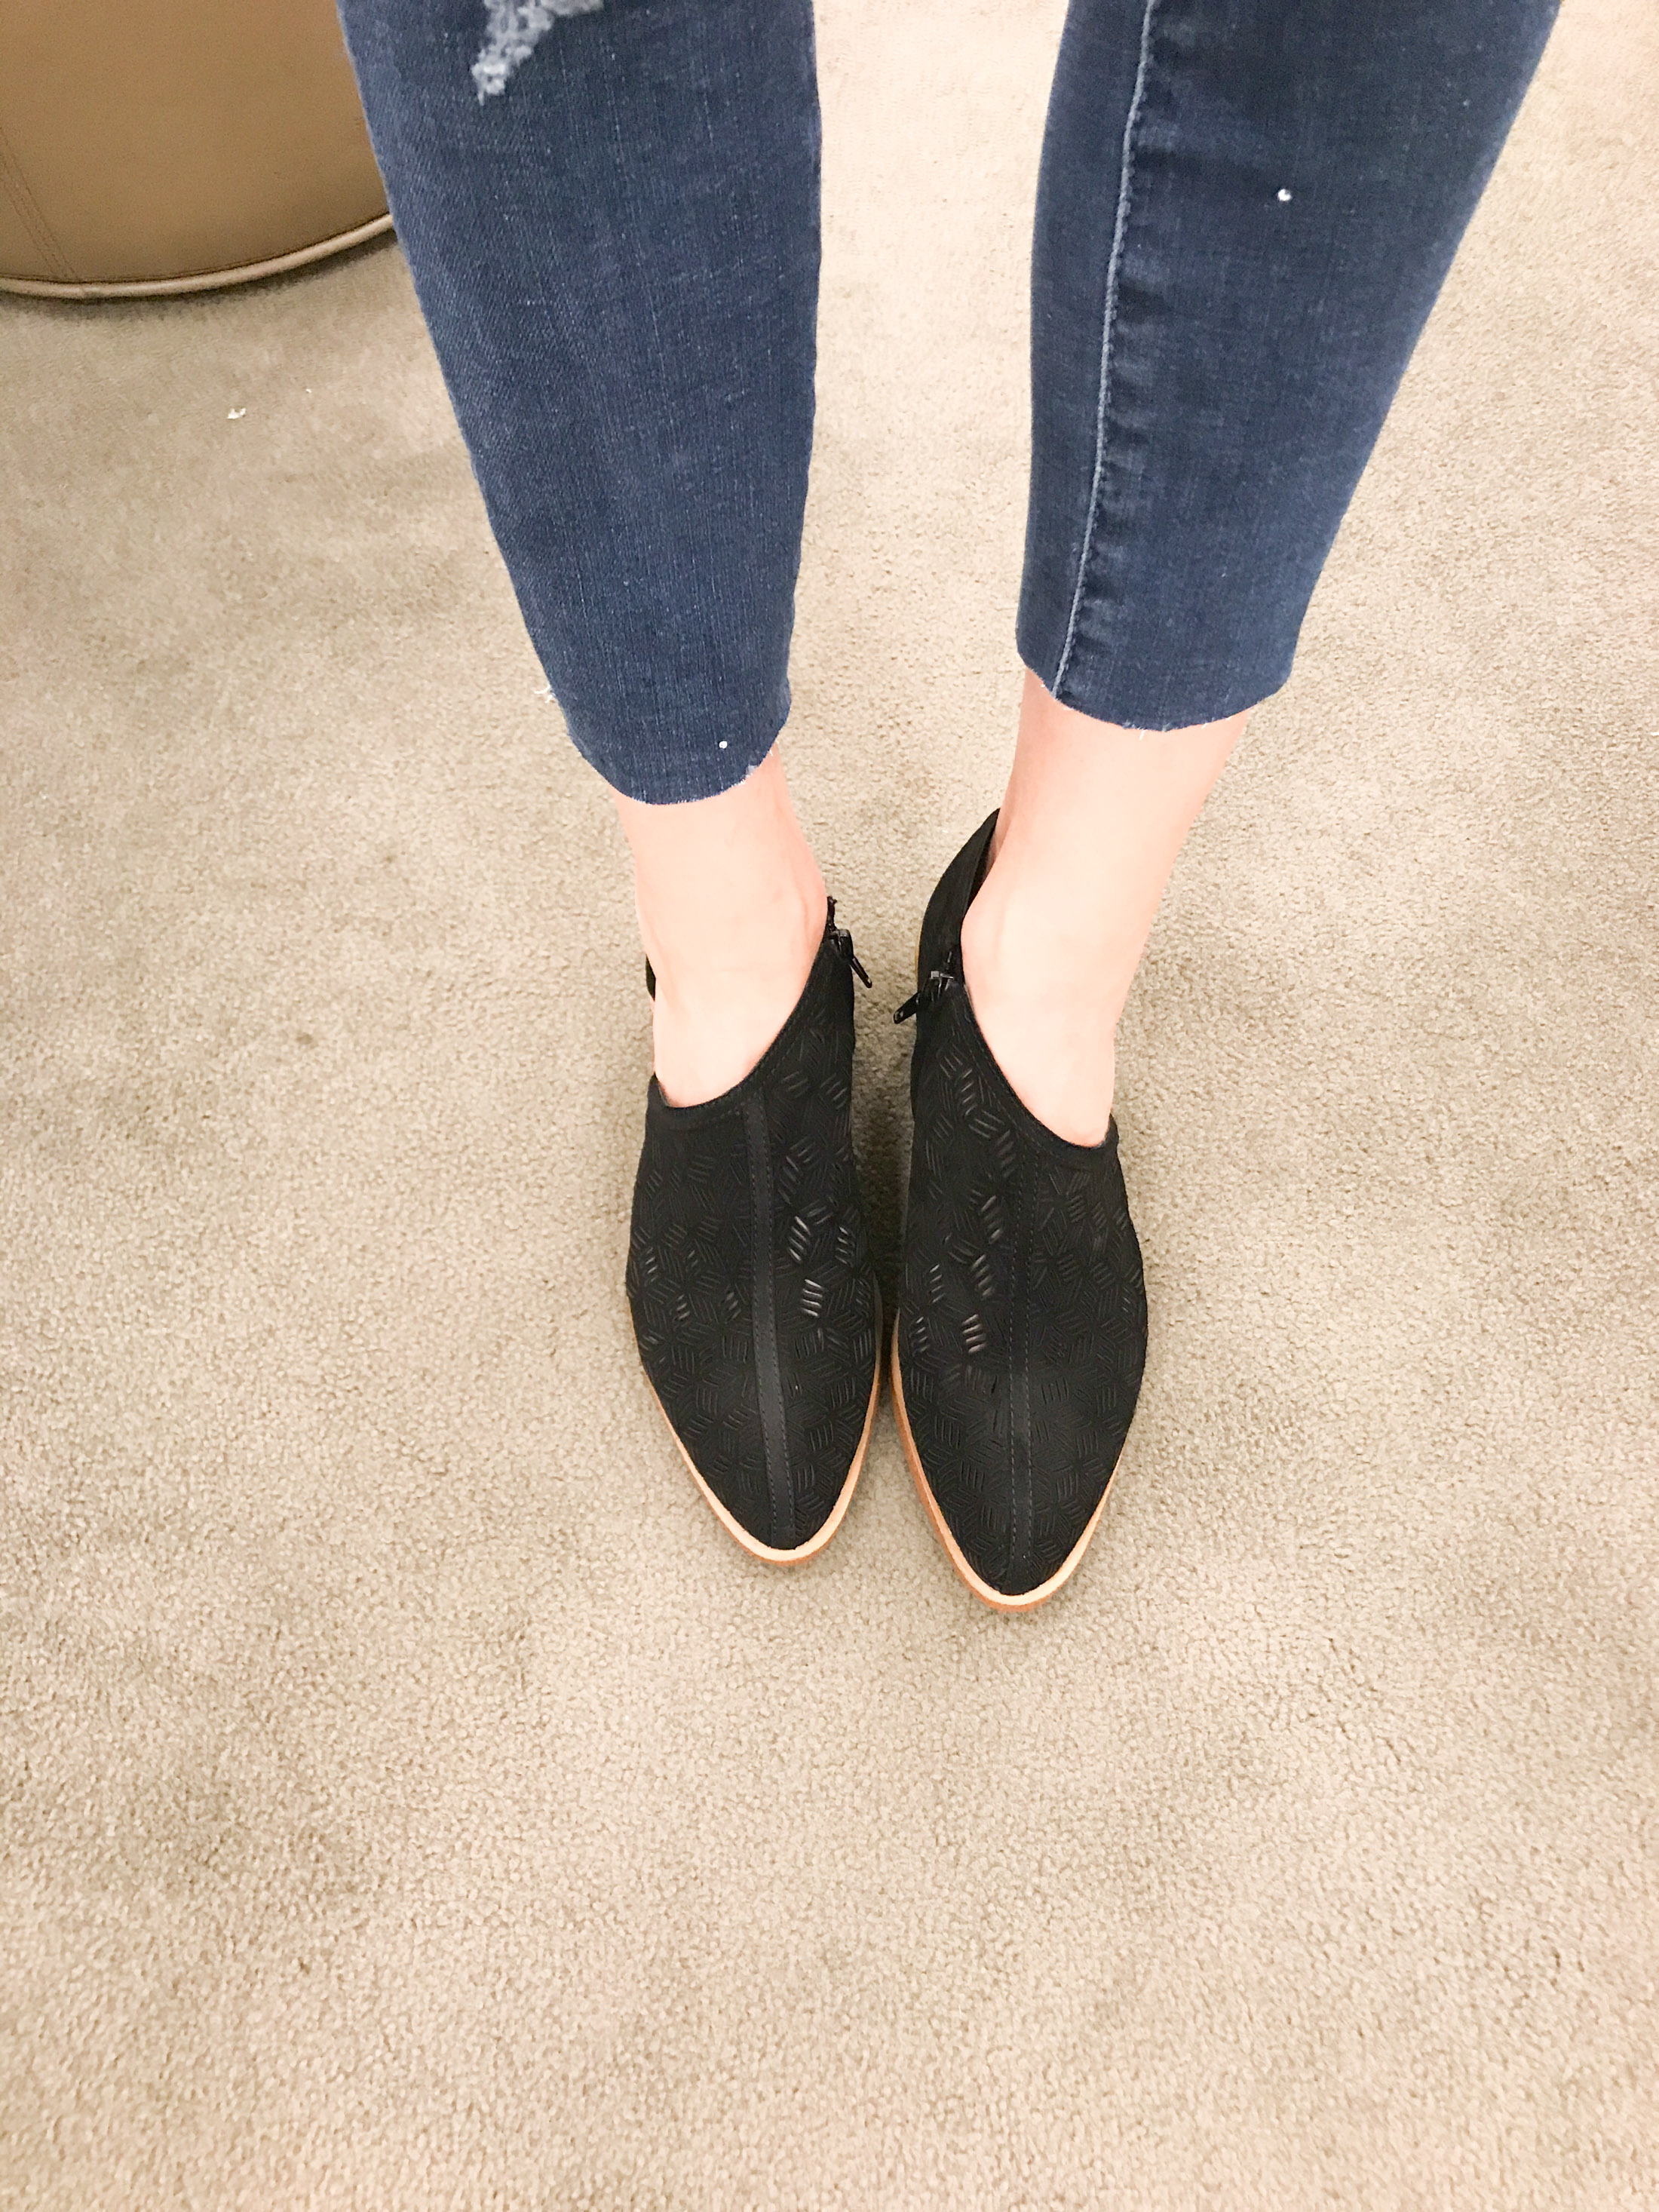 4a153d178788 Nordstrom Anniversary Sale  Shoes and Boots - The Mom Edit